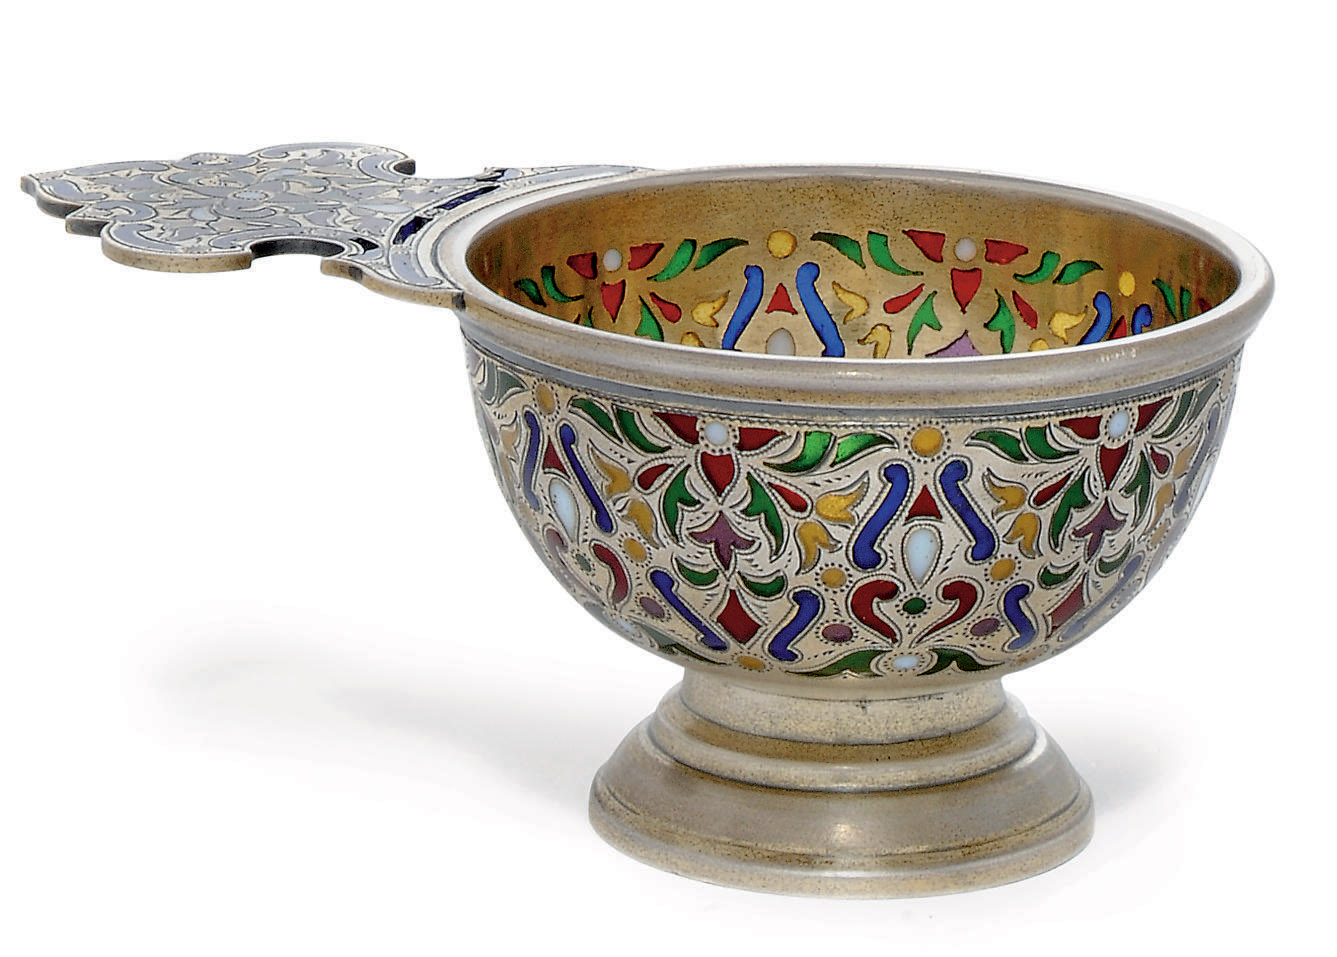 A SMALL RUSSIAN SILVER-GILT AND PLIQUE-A-JOUR ENAMEL CHARKA